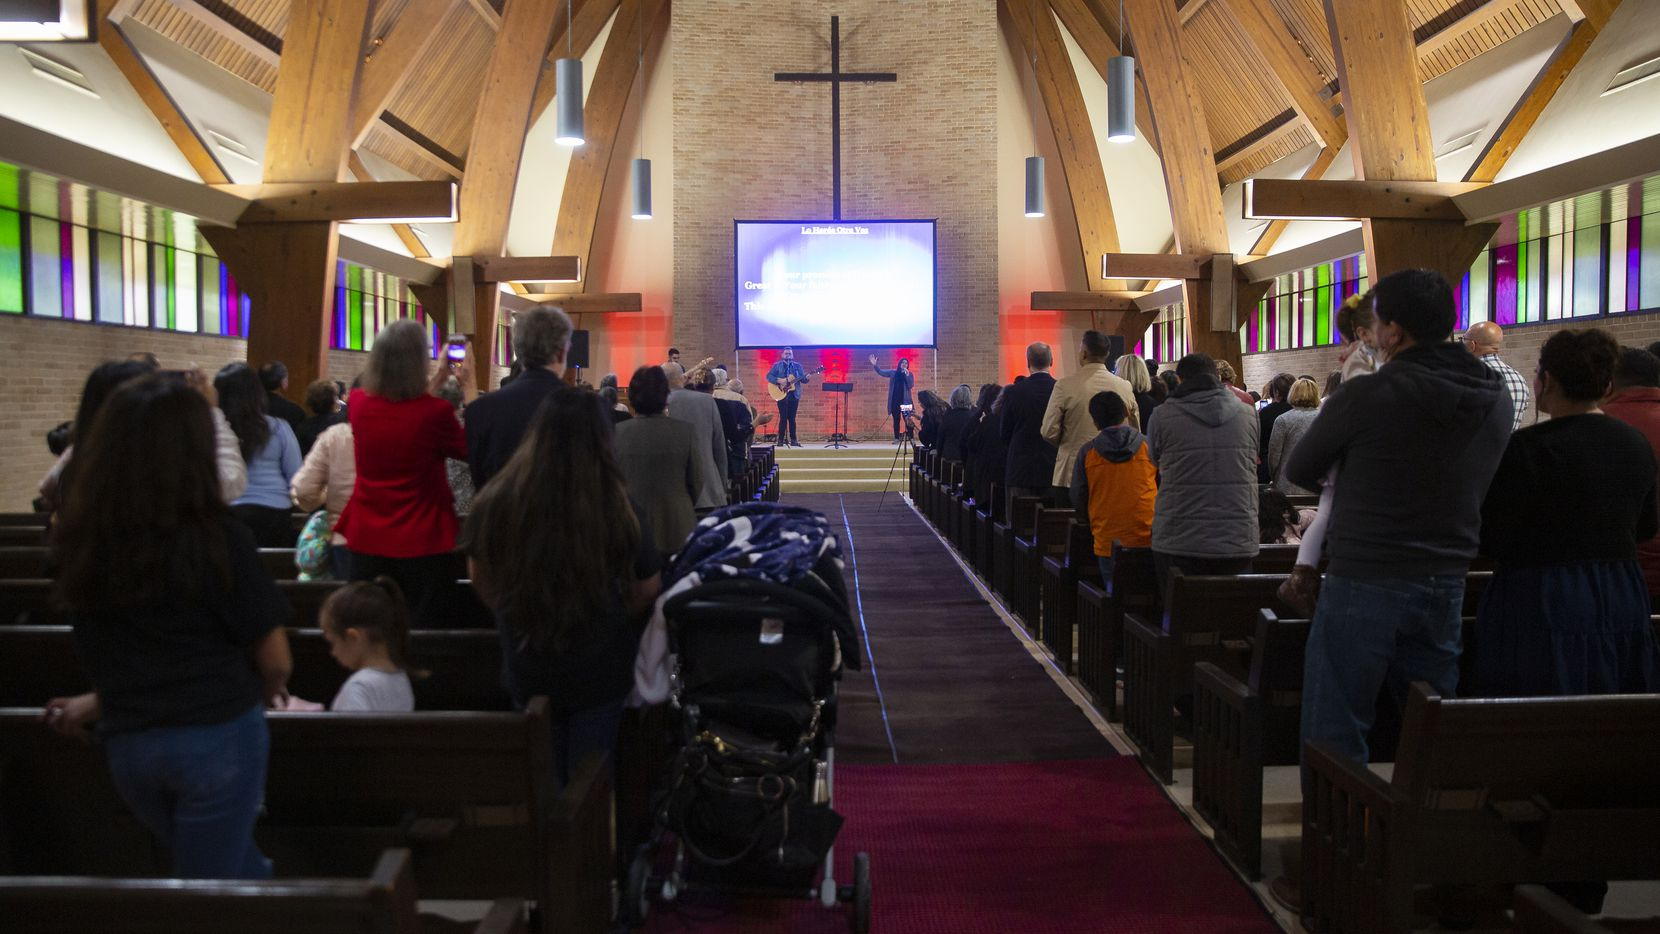 For the next year at least, Primera Iglesia Bautista —  the First Mexican Baptist Church — will worship in the former John Calvin sanctuary, thanks to the next-door da Vinci School.